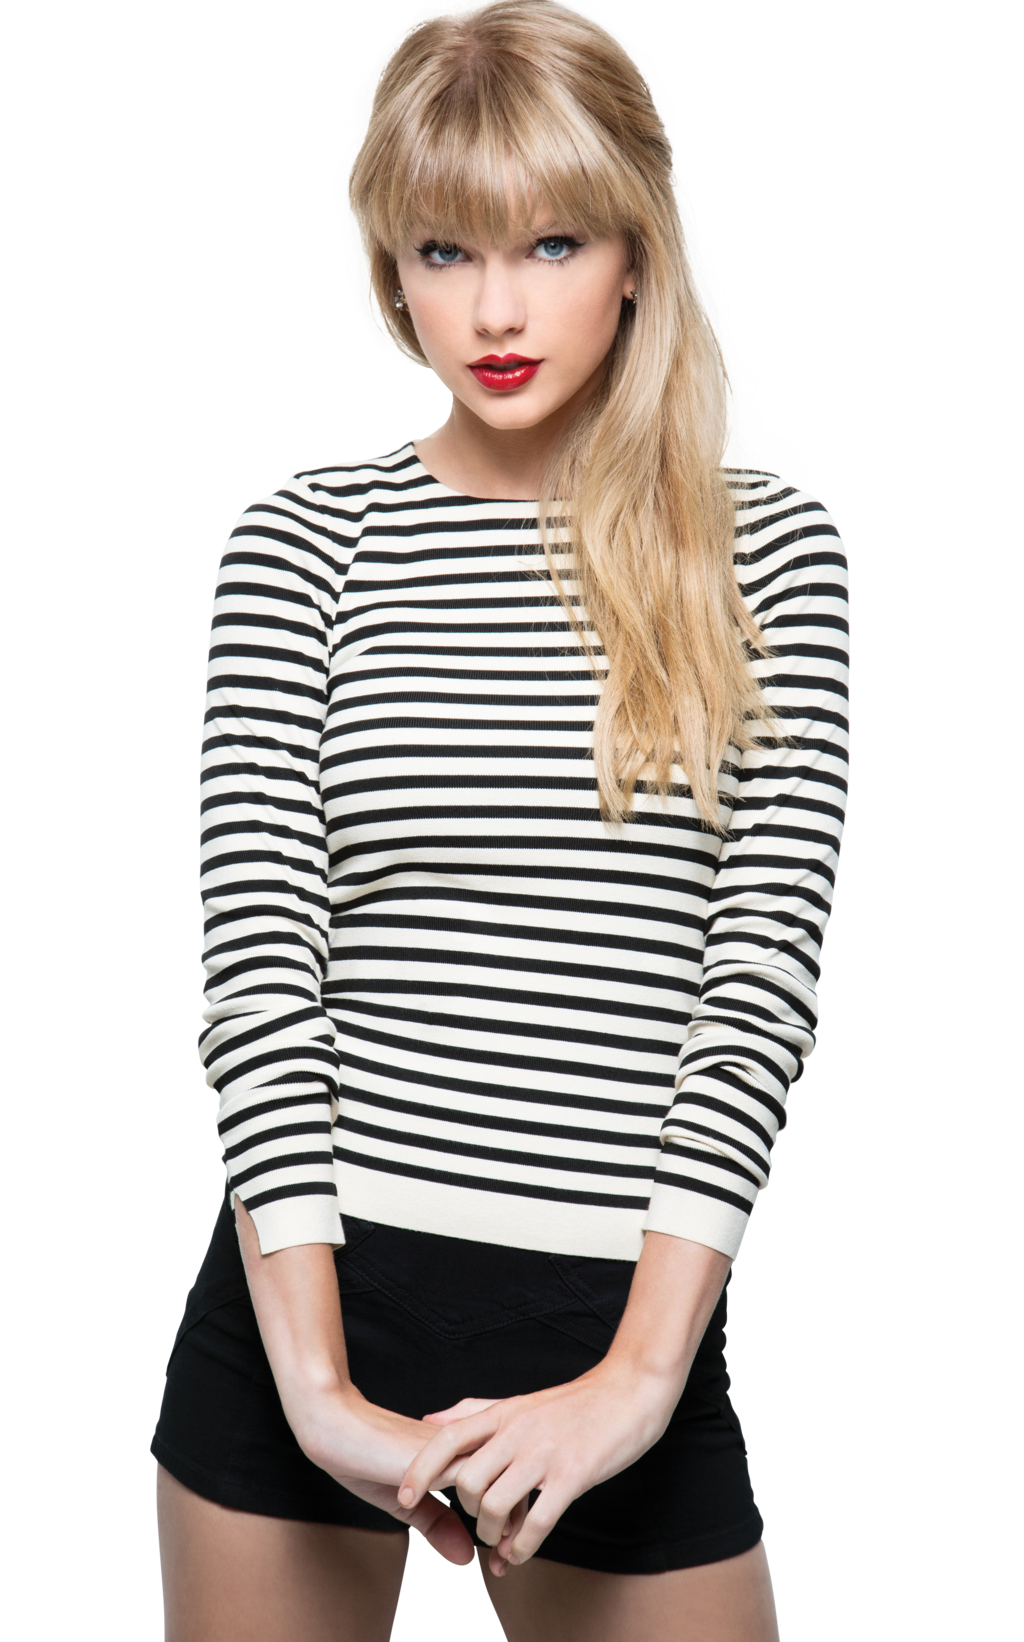 Taylor Swift PNG Images Transparent Free Download.